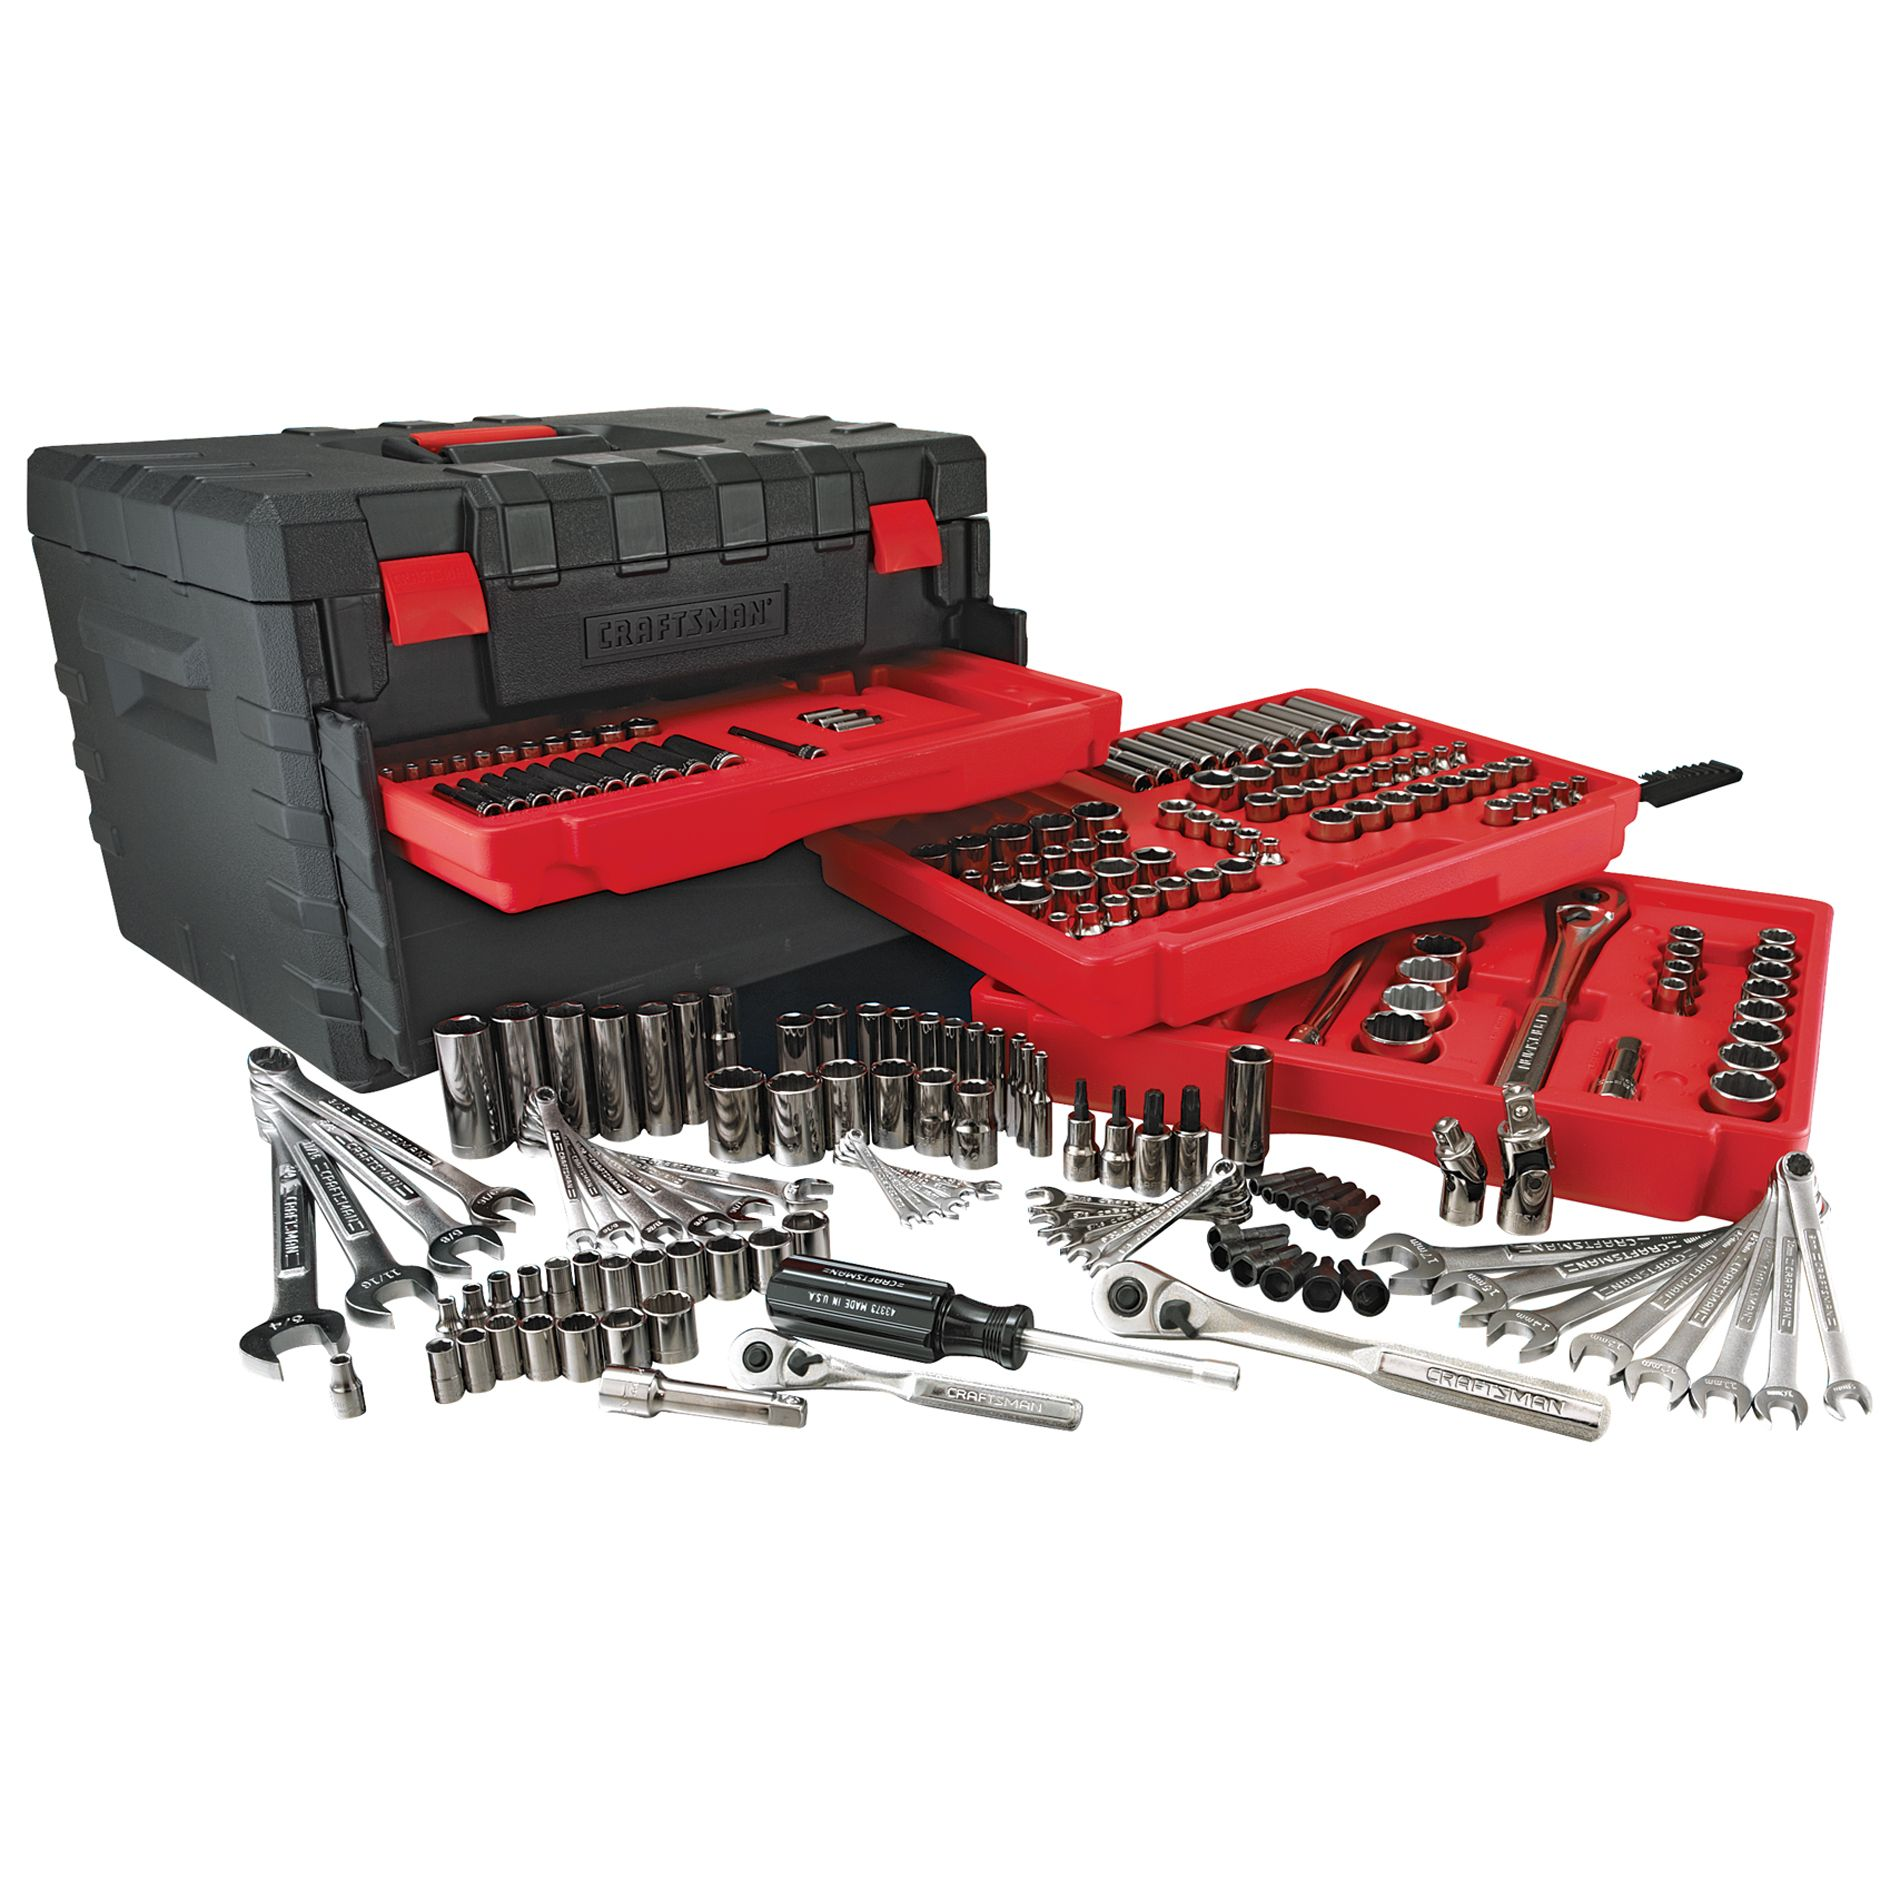 258 pc. Mechanic's Tools Set